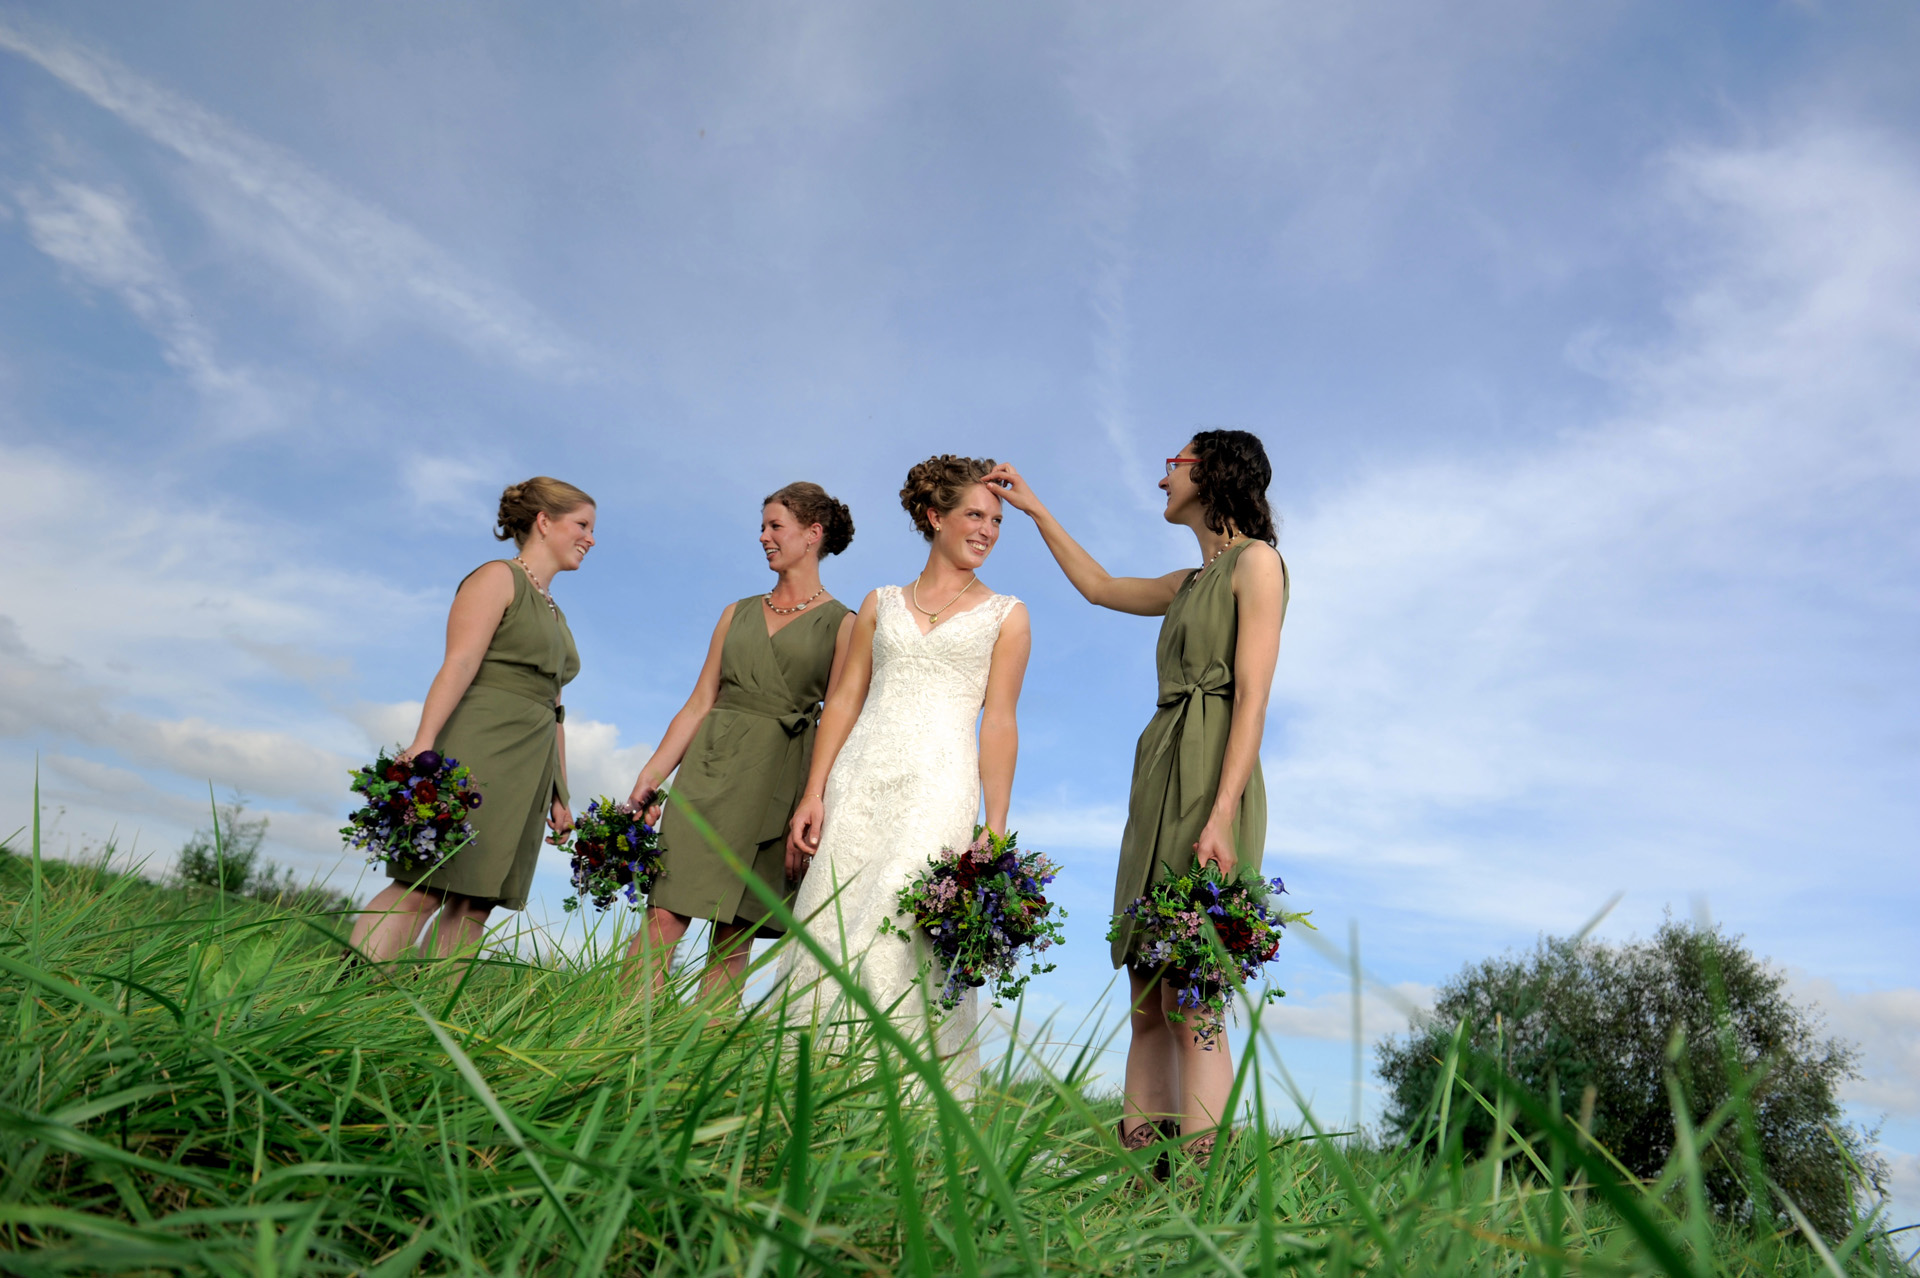 Michigan country wedding wedding photographer captures a candid moment of the bridesmaids during the Michigan country wedding.